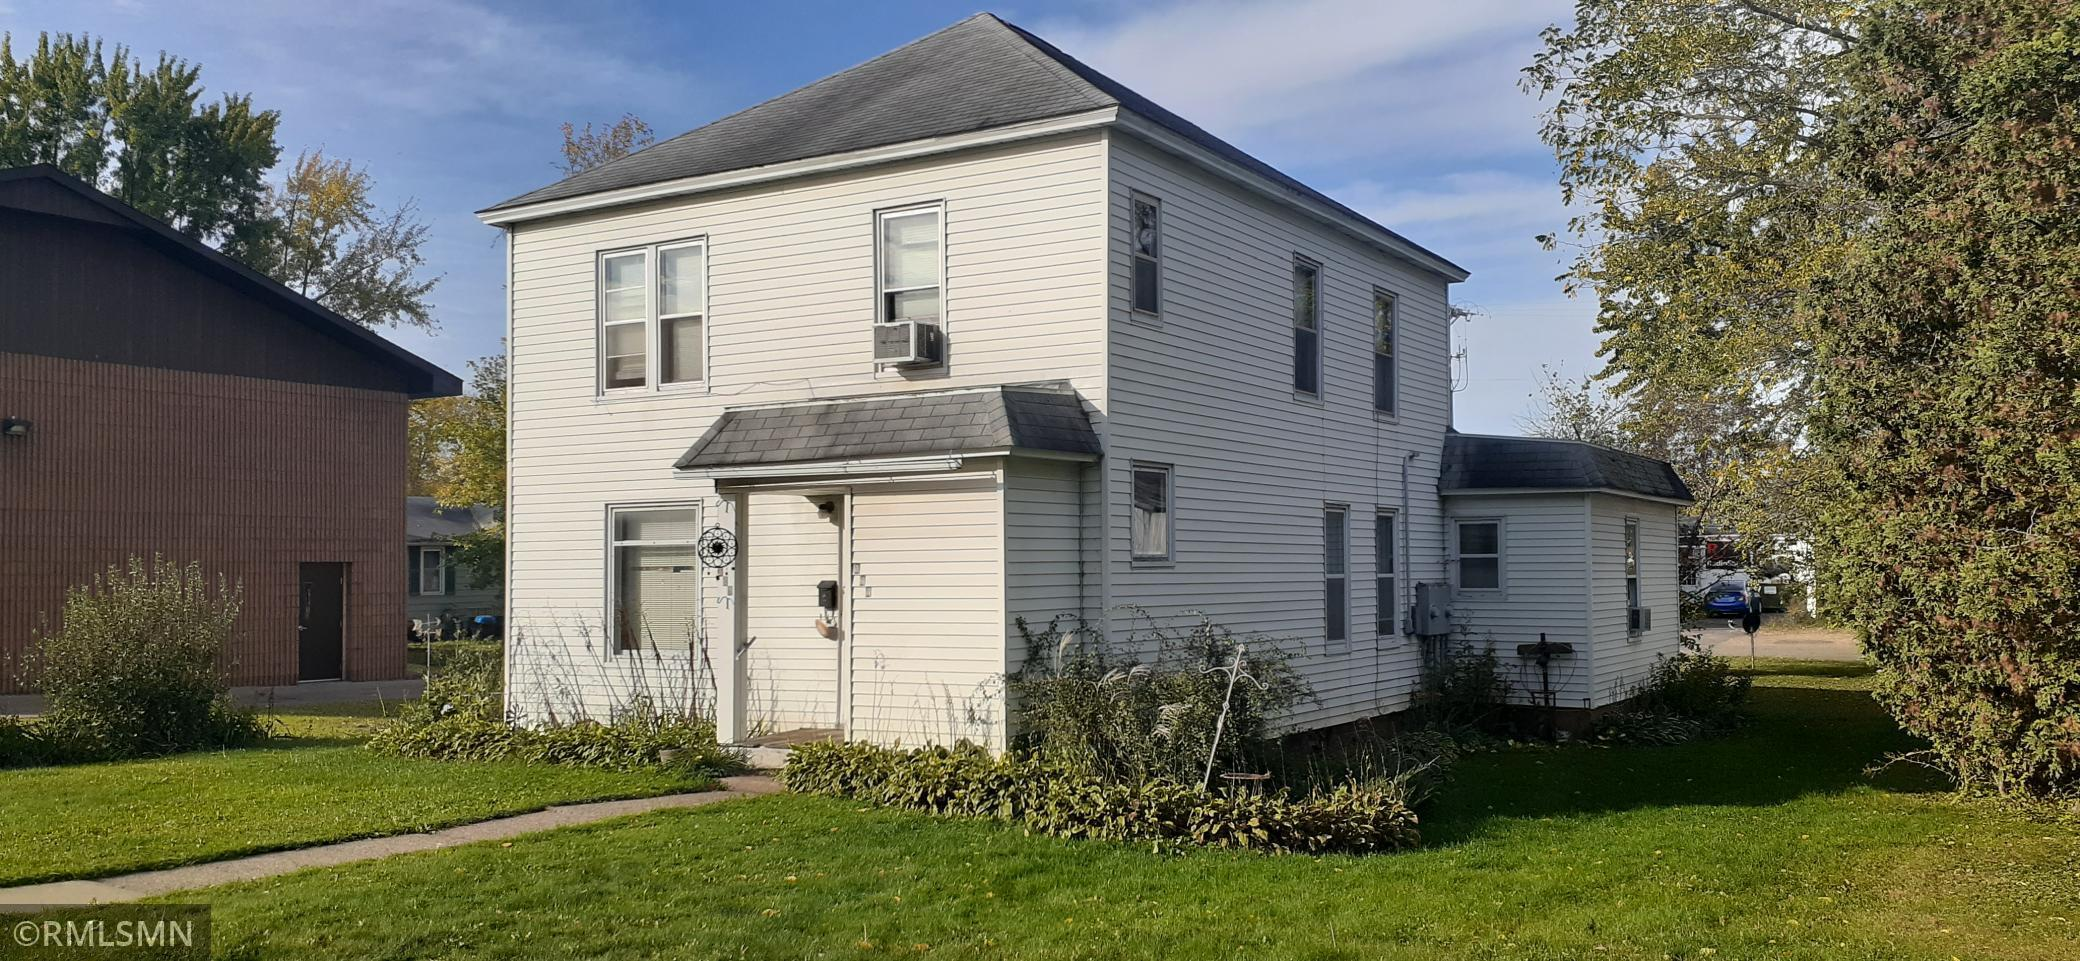 327-329 Arch Avenue, New Richmond, Wisconsin 54017, ,Residential Income,For Sale,Arch,NST6113647